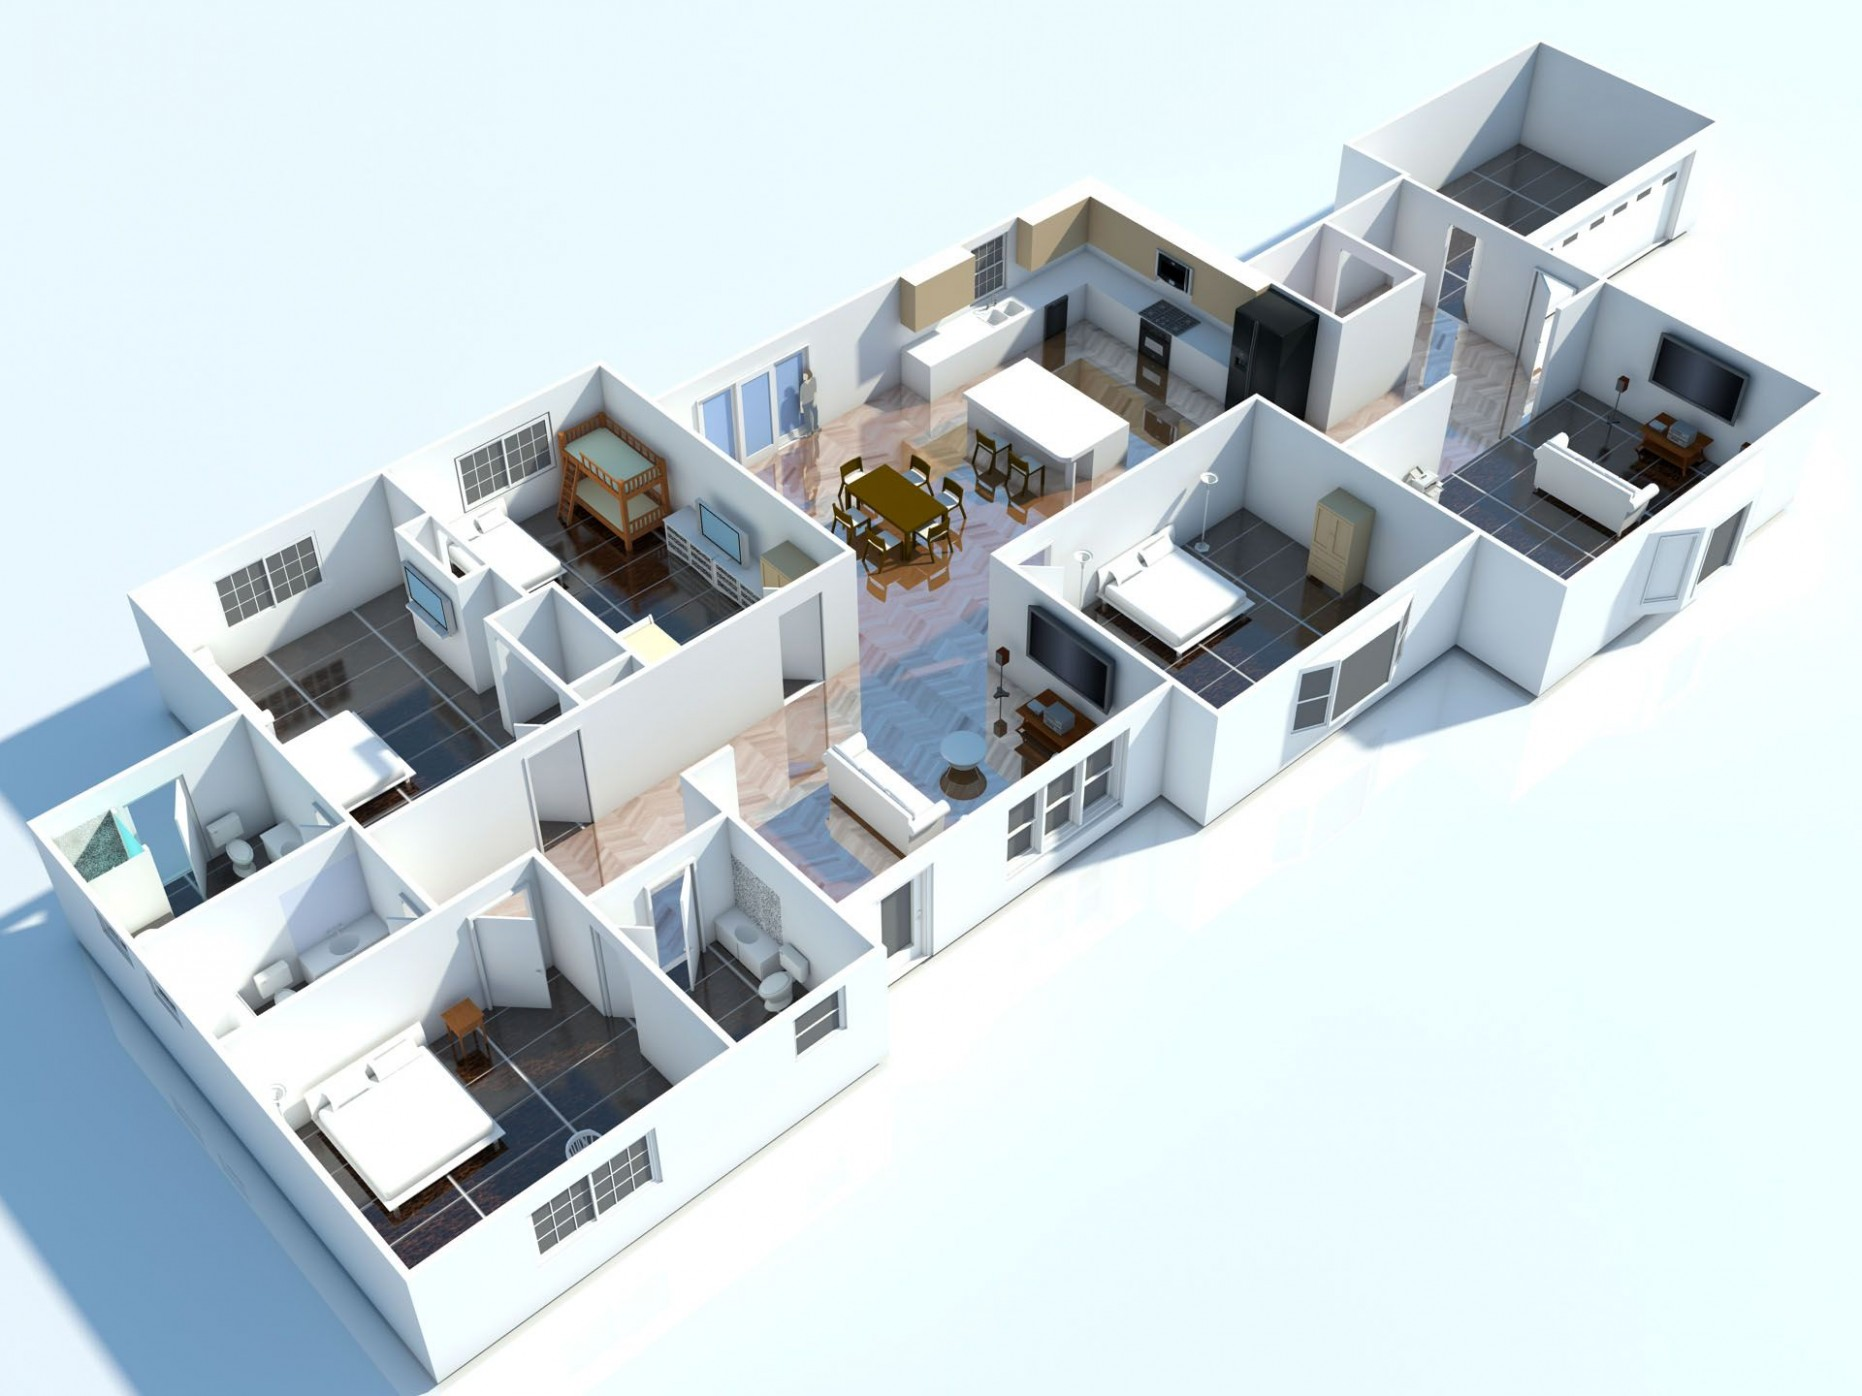 Home Designing Software  Home design software, Floor plan design  - Apartment Design Software